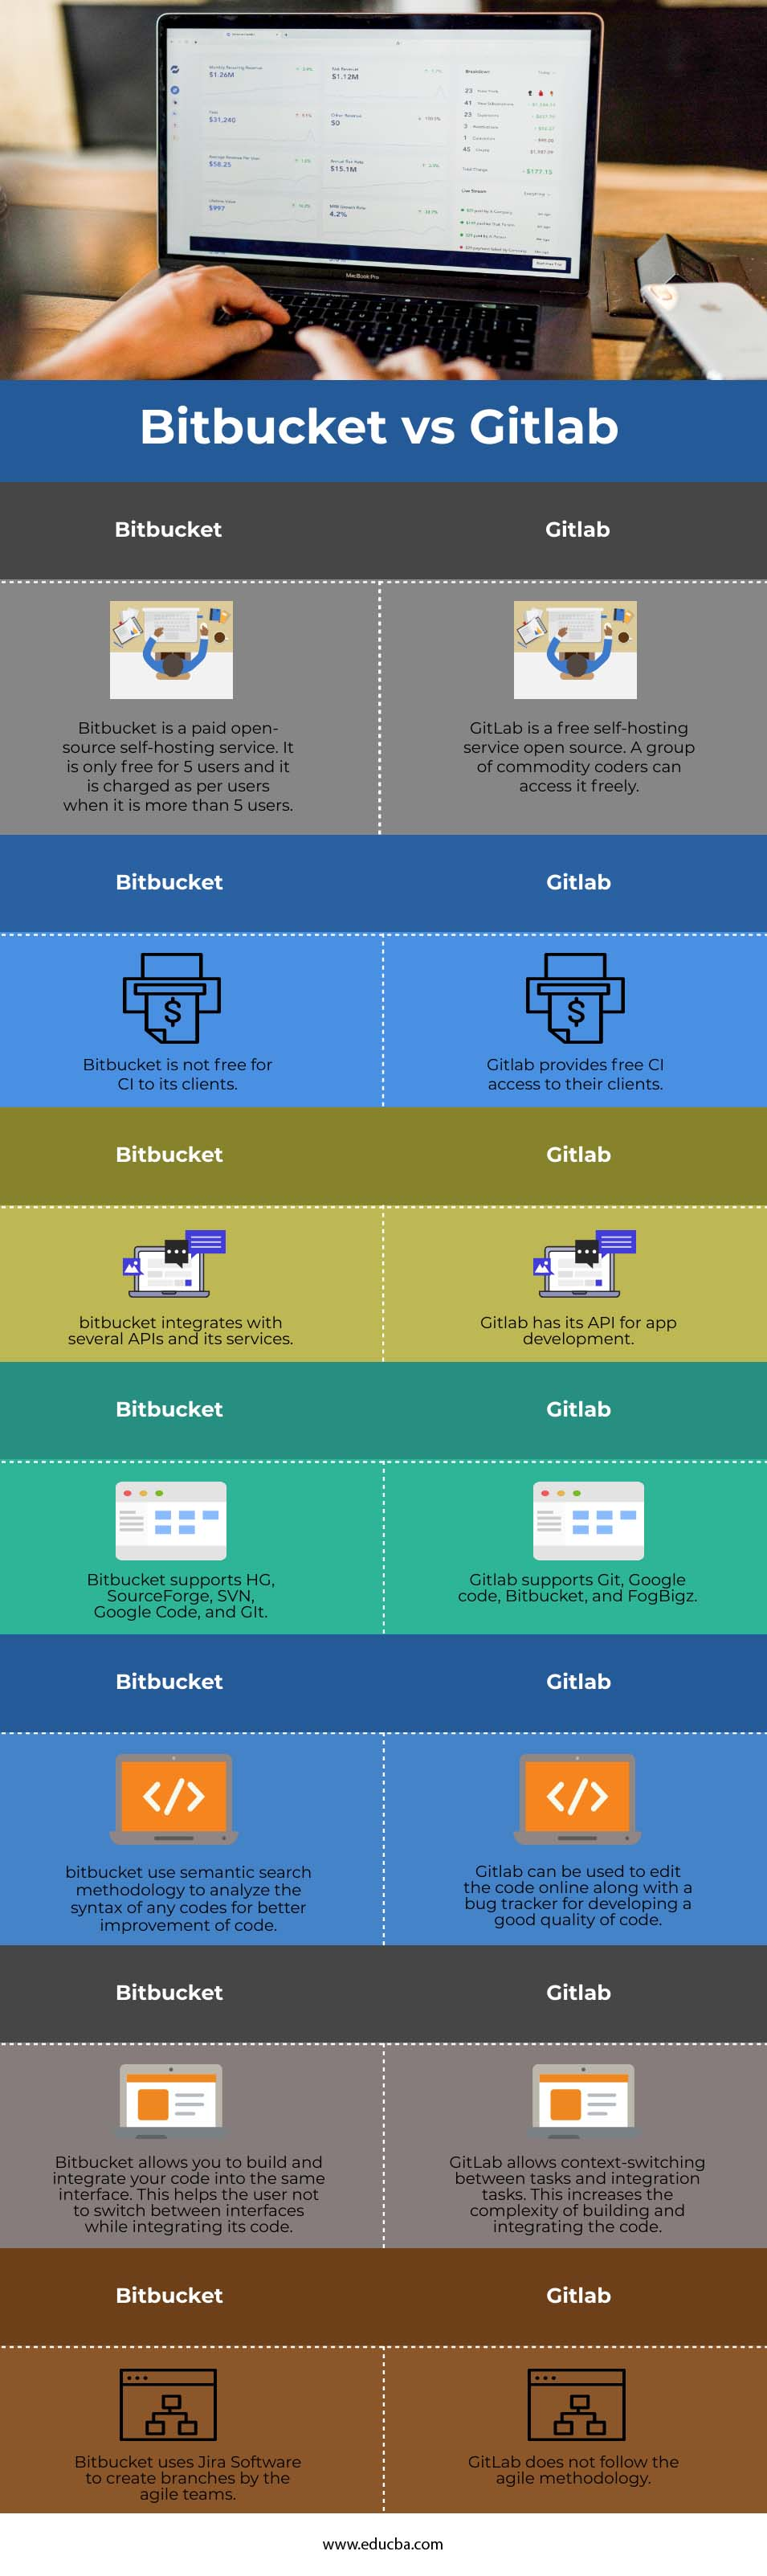 Bitbucket vs Gitlab info